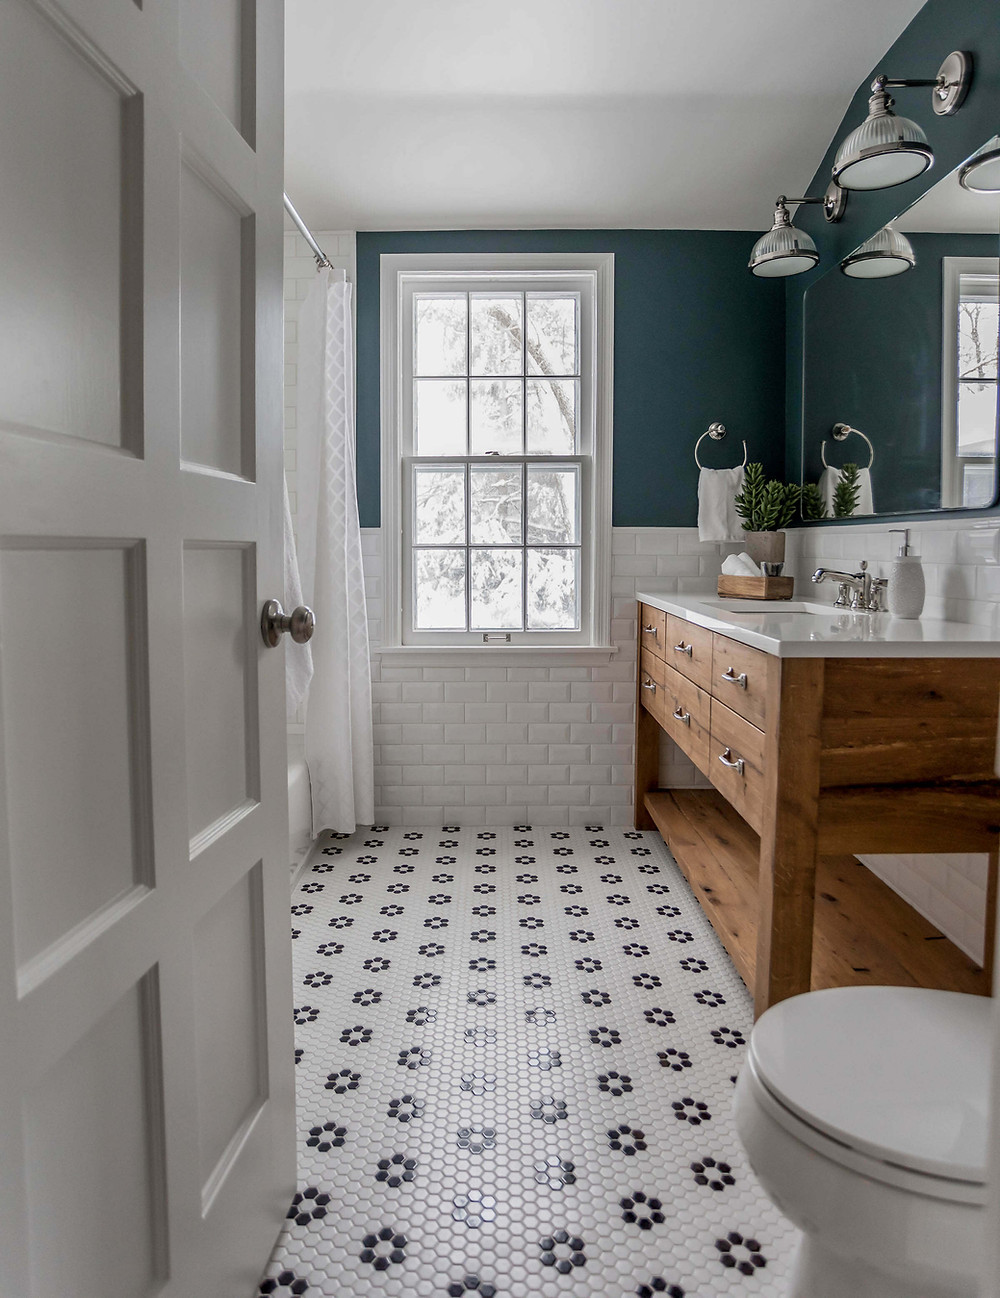 Flower pattern penny floor tile bathroom with reclaimed wood vanity and bold teal walls above a half wall of subway tile